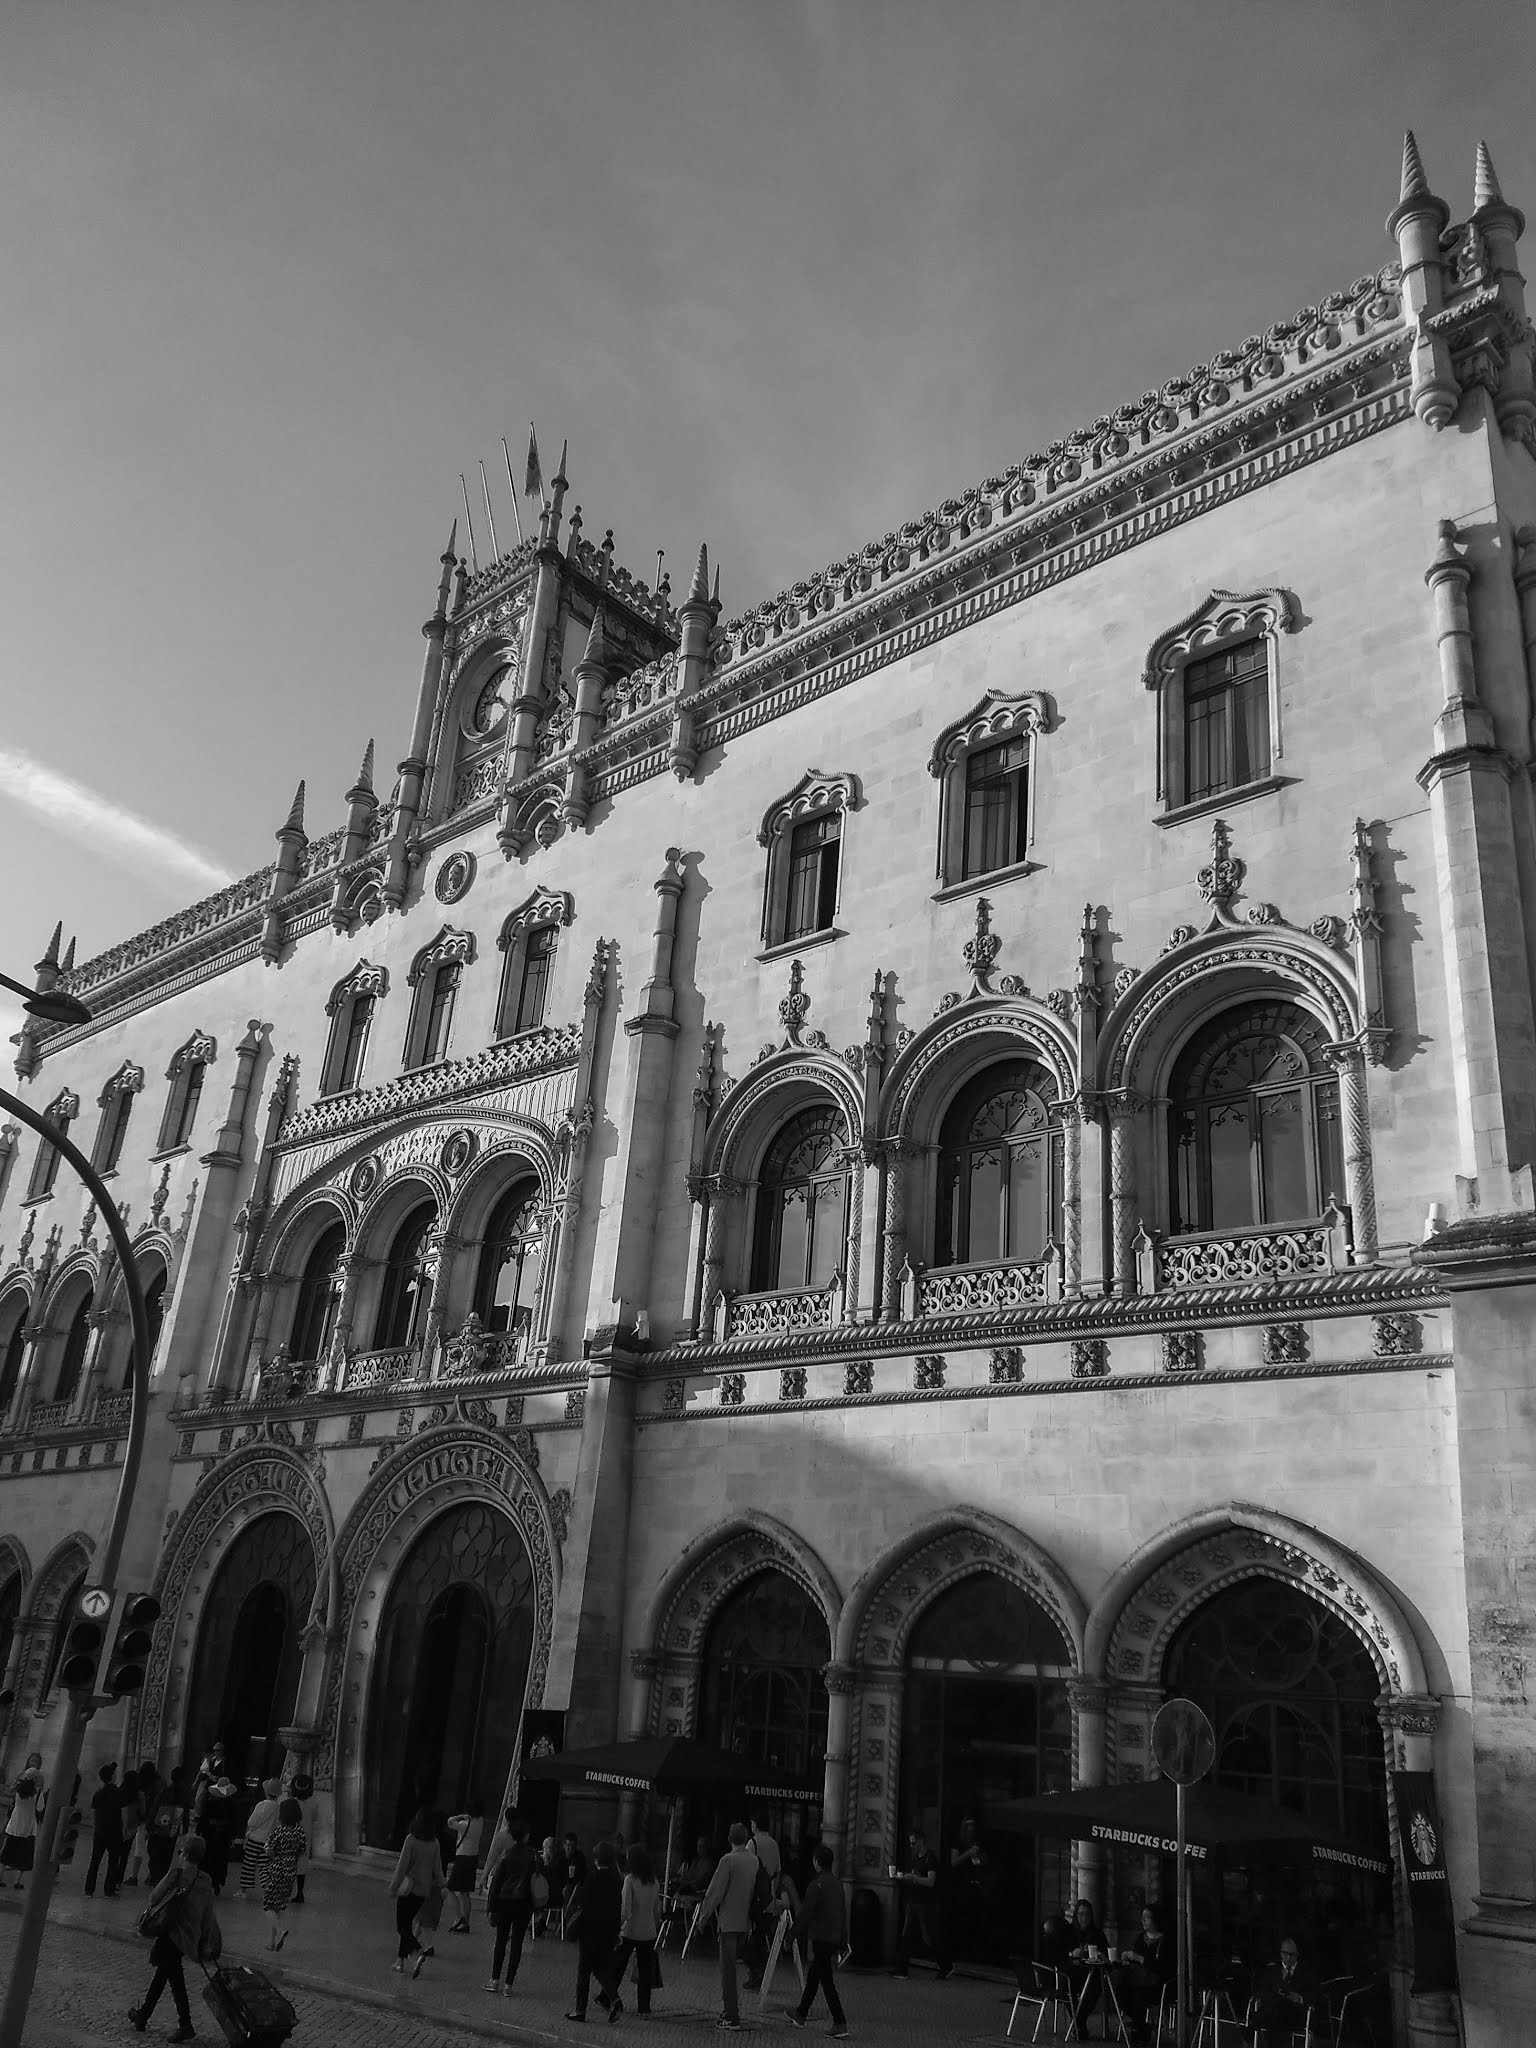 Black and white photo of Rossio Railway Station building on the outside in Lisbon, Portugal.